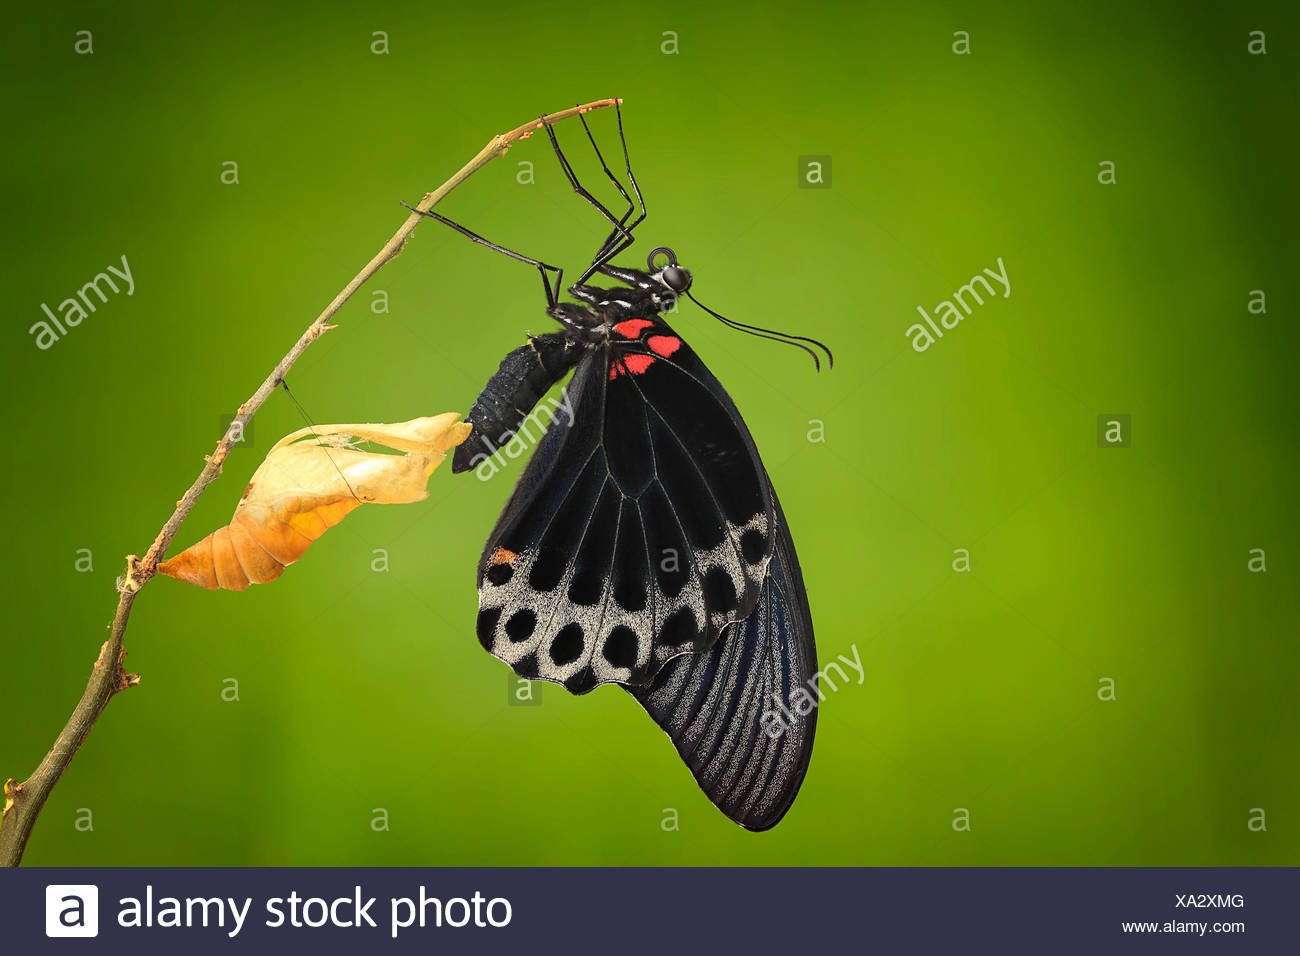 Butterfly emerging from its chrysalis, Jember, Indonesia - Stock Image